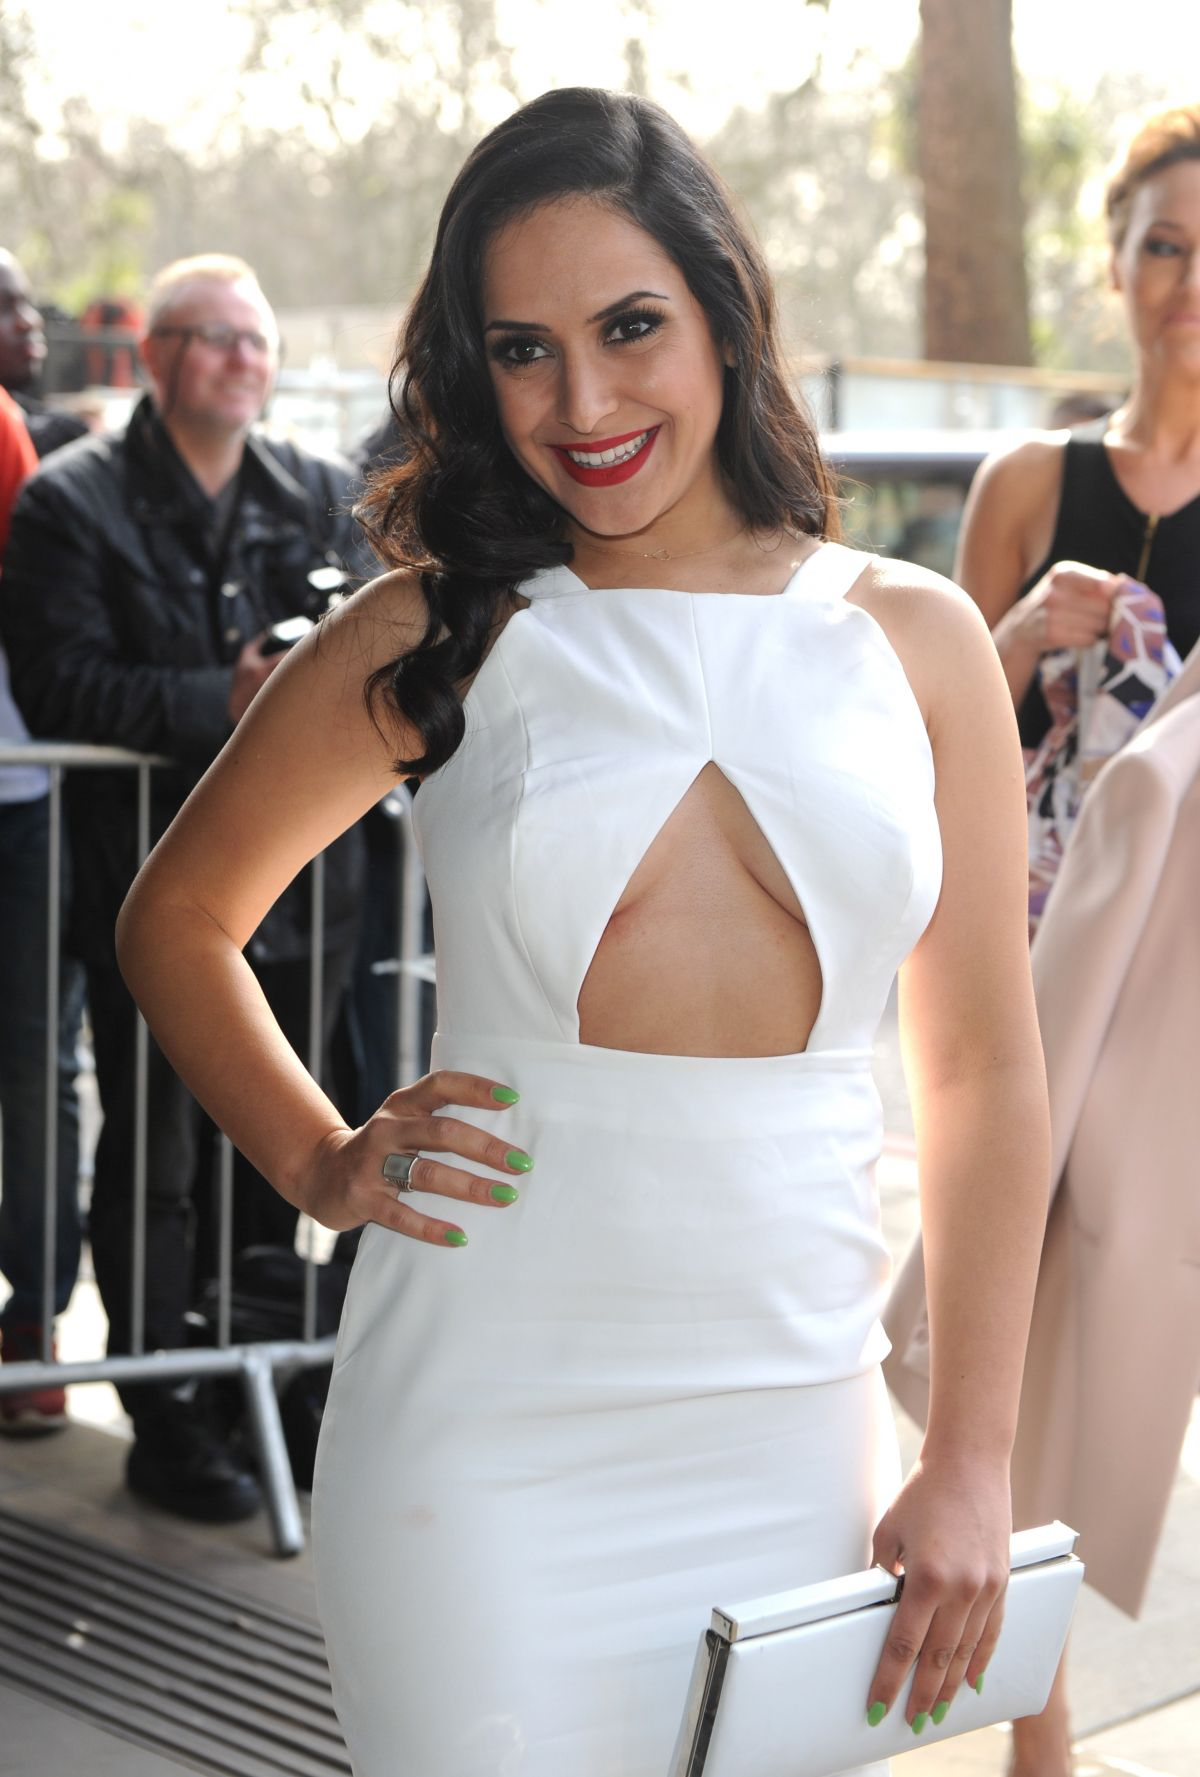 NAZANEEN GHAFFAR at TRIC Awards 2015 in London